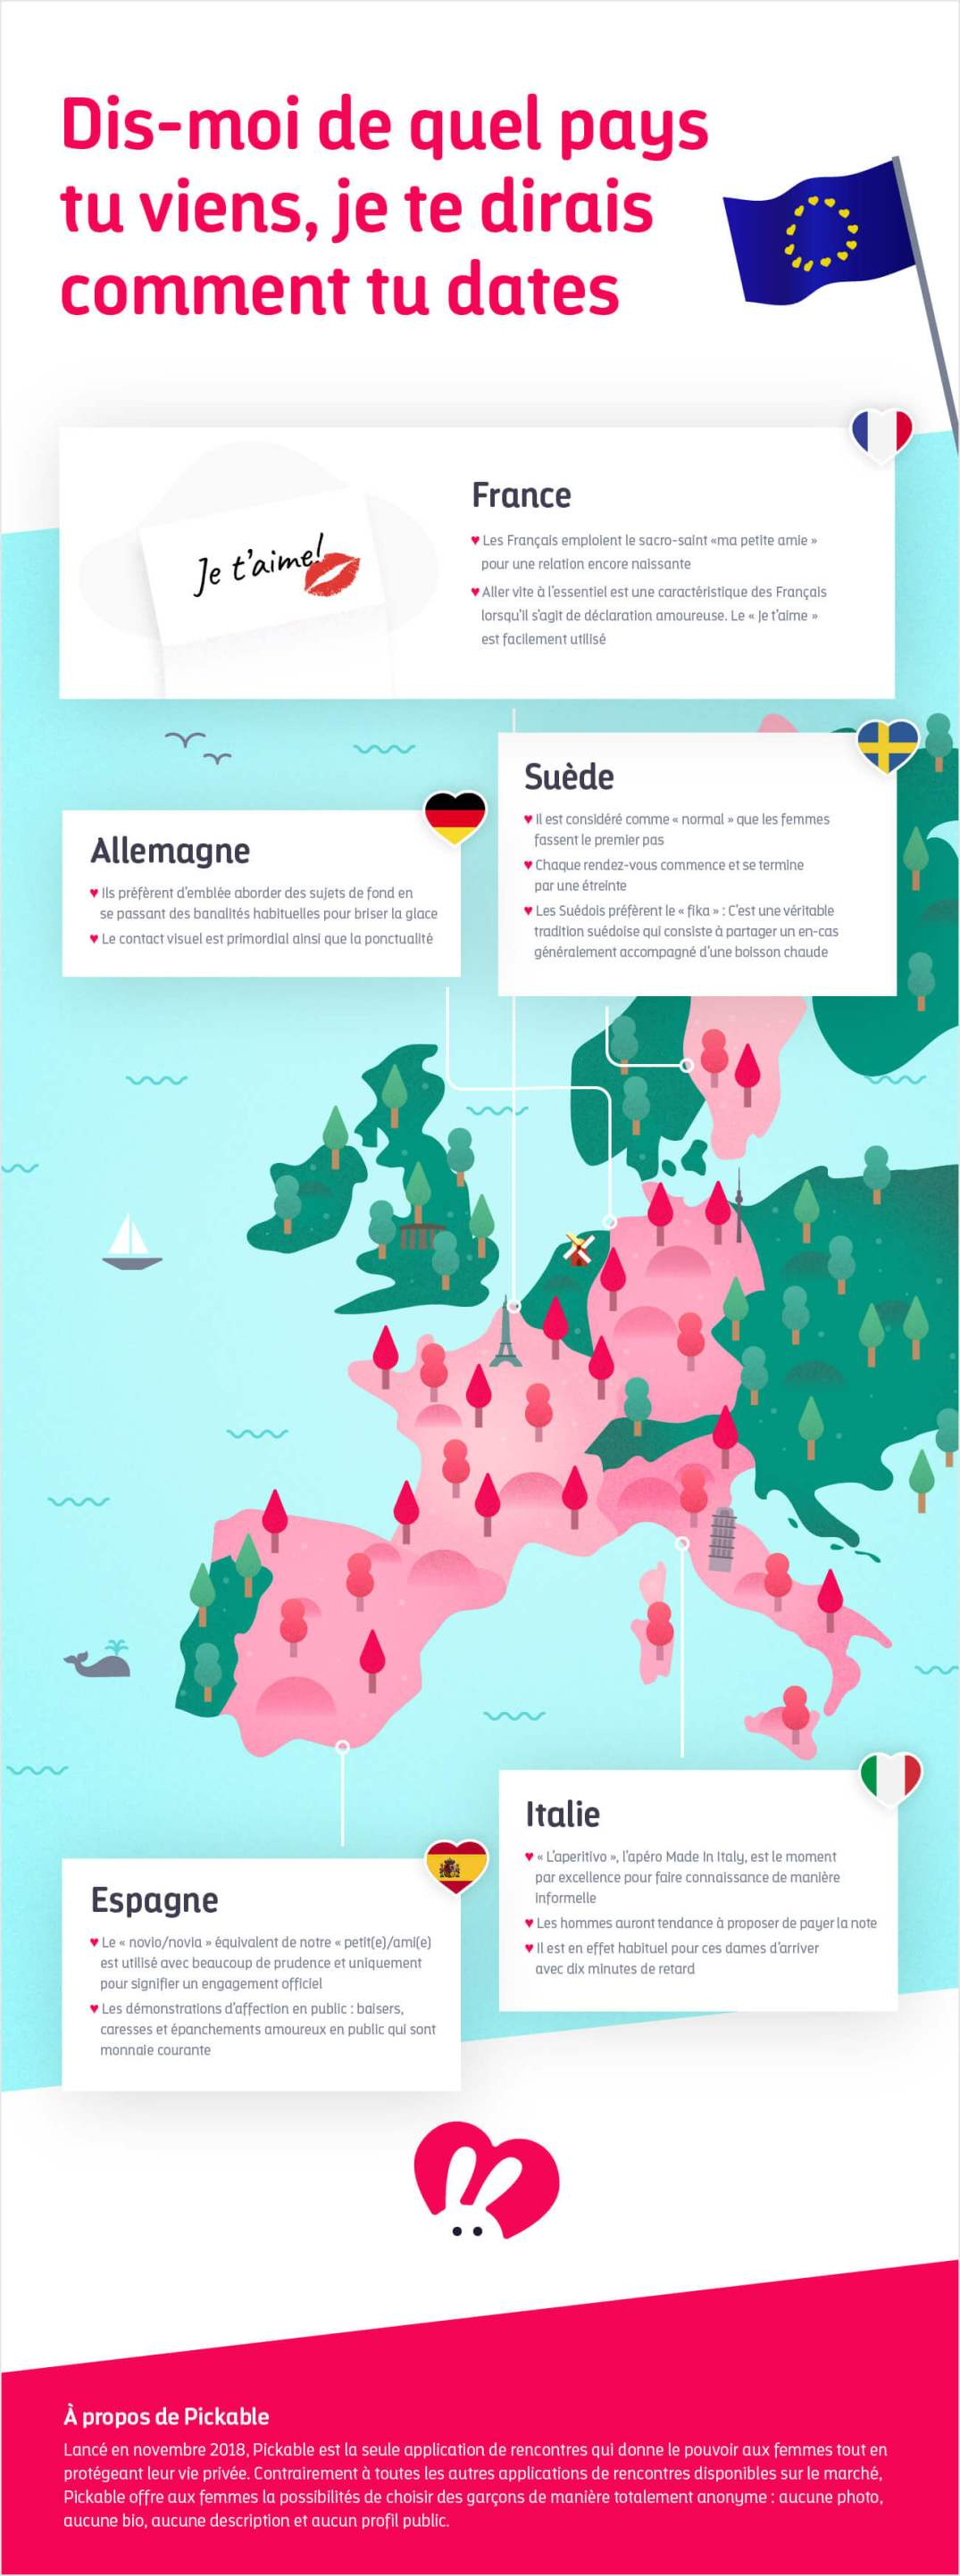 Pickable_Infographic_date-europe_FR